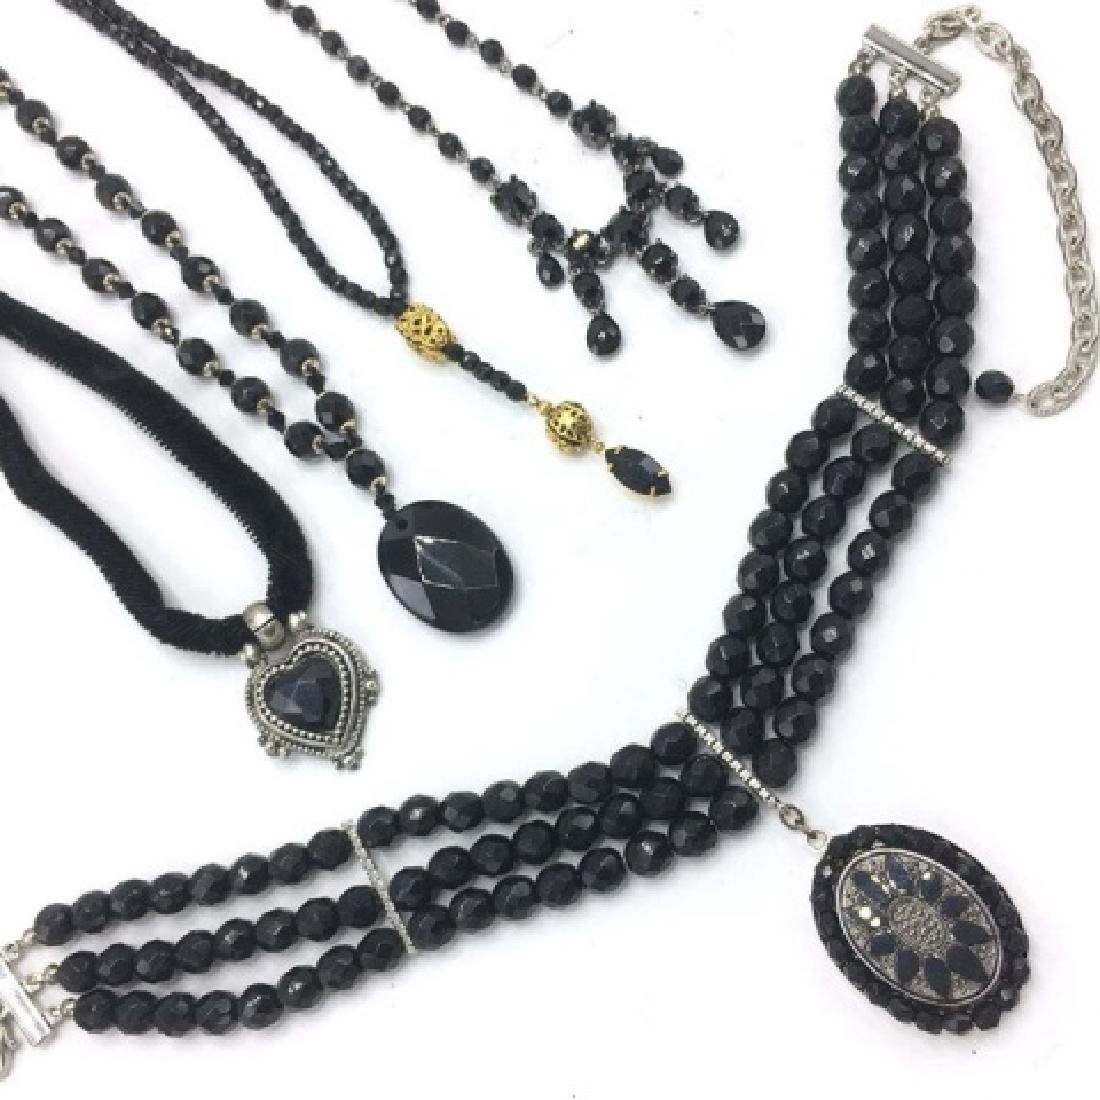 Vintage Victorian Style / Mourning Style Necklaces - 3